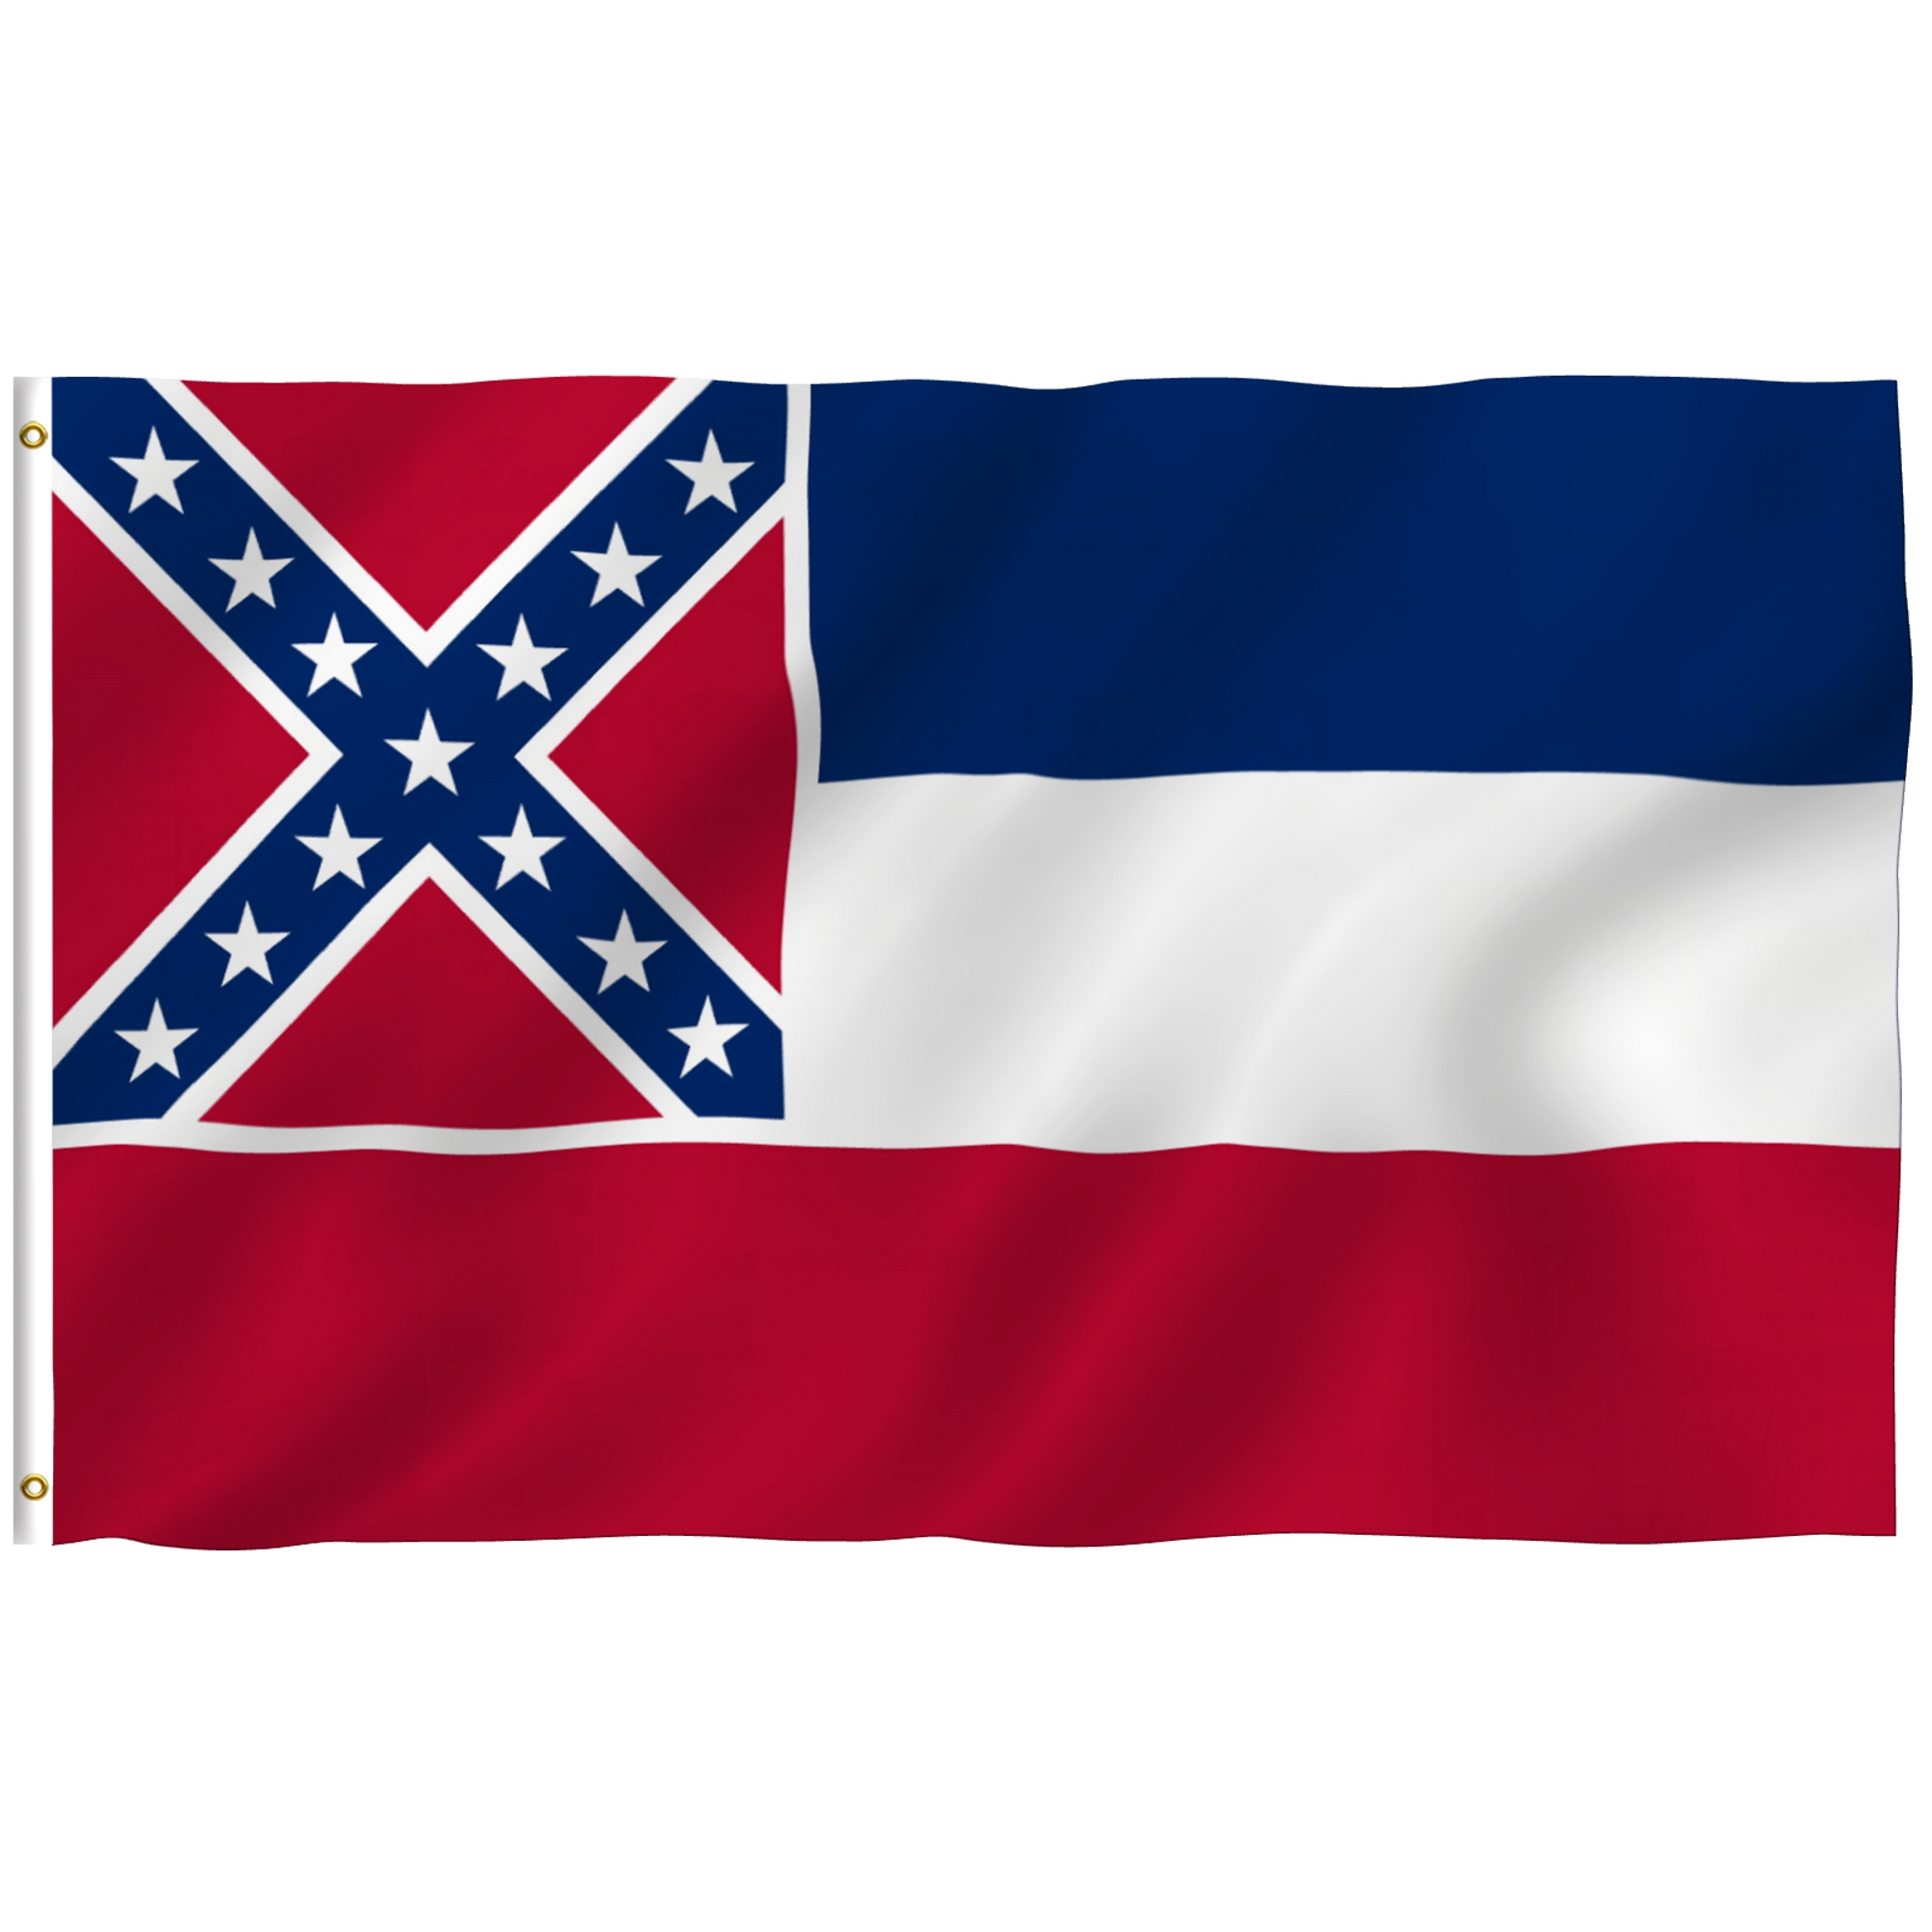 ANLEY [Fly Breeze] 3x5 Foot Mississippi State Polyester Flag - Vivid Color and UV Fade Resistant - Canvas Header and Double Stitched - Mississippi MS Flags with Brass Grommets 3 X 5 Ft